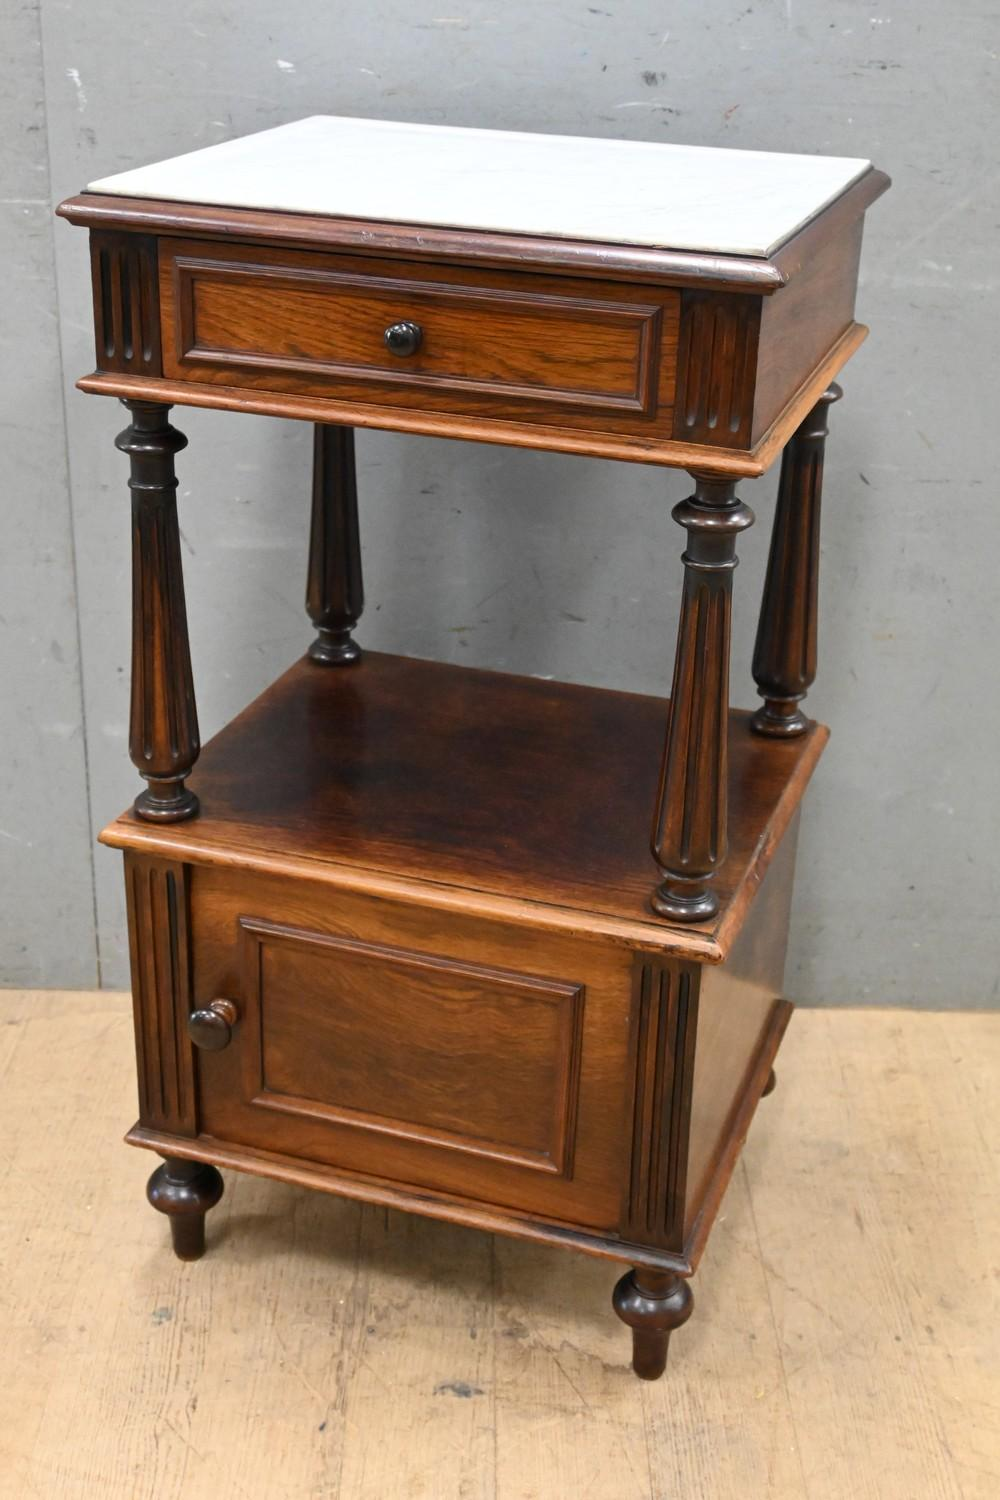 A LOUIS XVI STYLE ROSEWOOD BEDSIDE CABINET WITH MARBLE TOP, CIRCA 1900S (A/F) (84H X 46W X 39D CM) (LEONARD JOEL DELIVERY SIZE: MEDIUM)